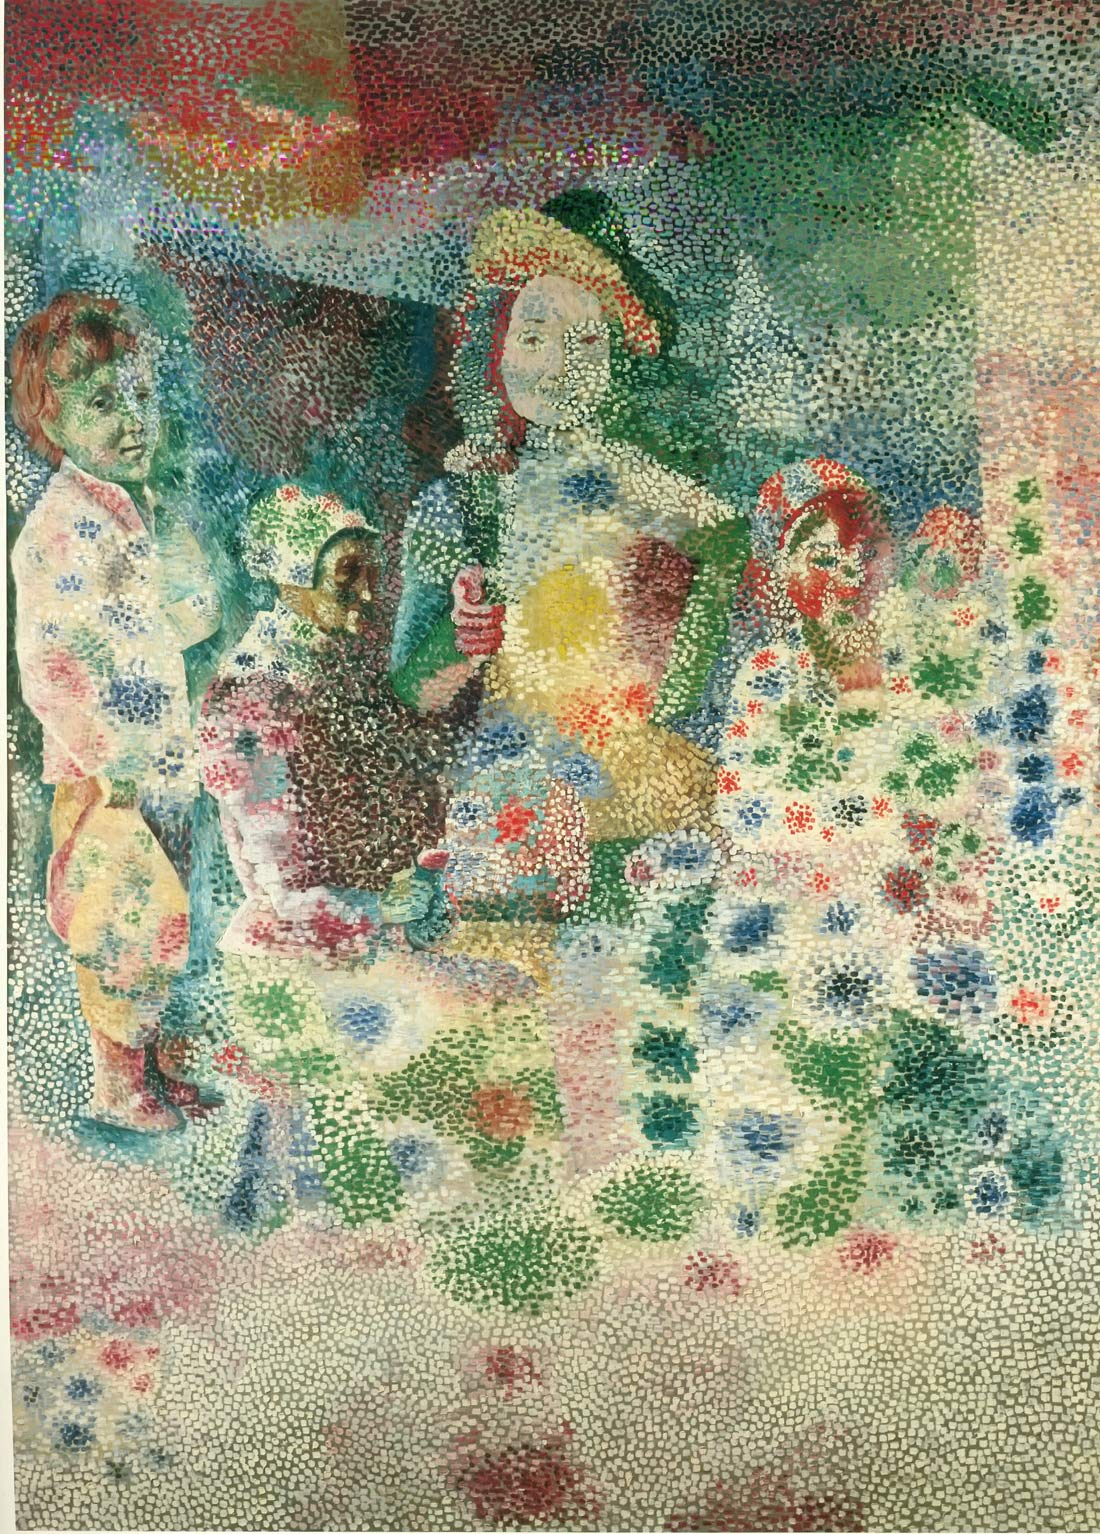 Return From The Baptism After Le Nain Pablo Picasso